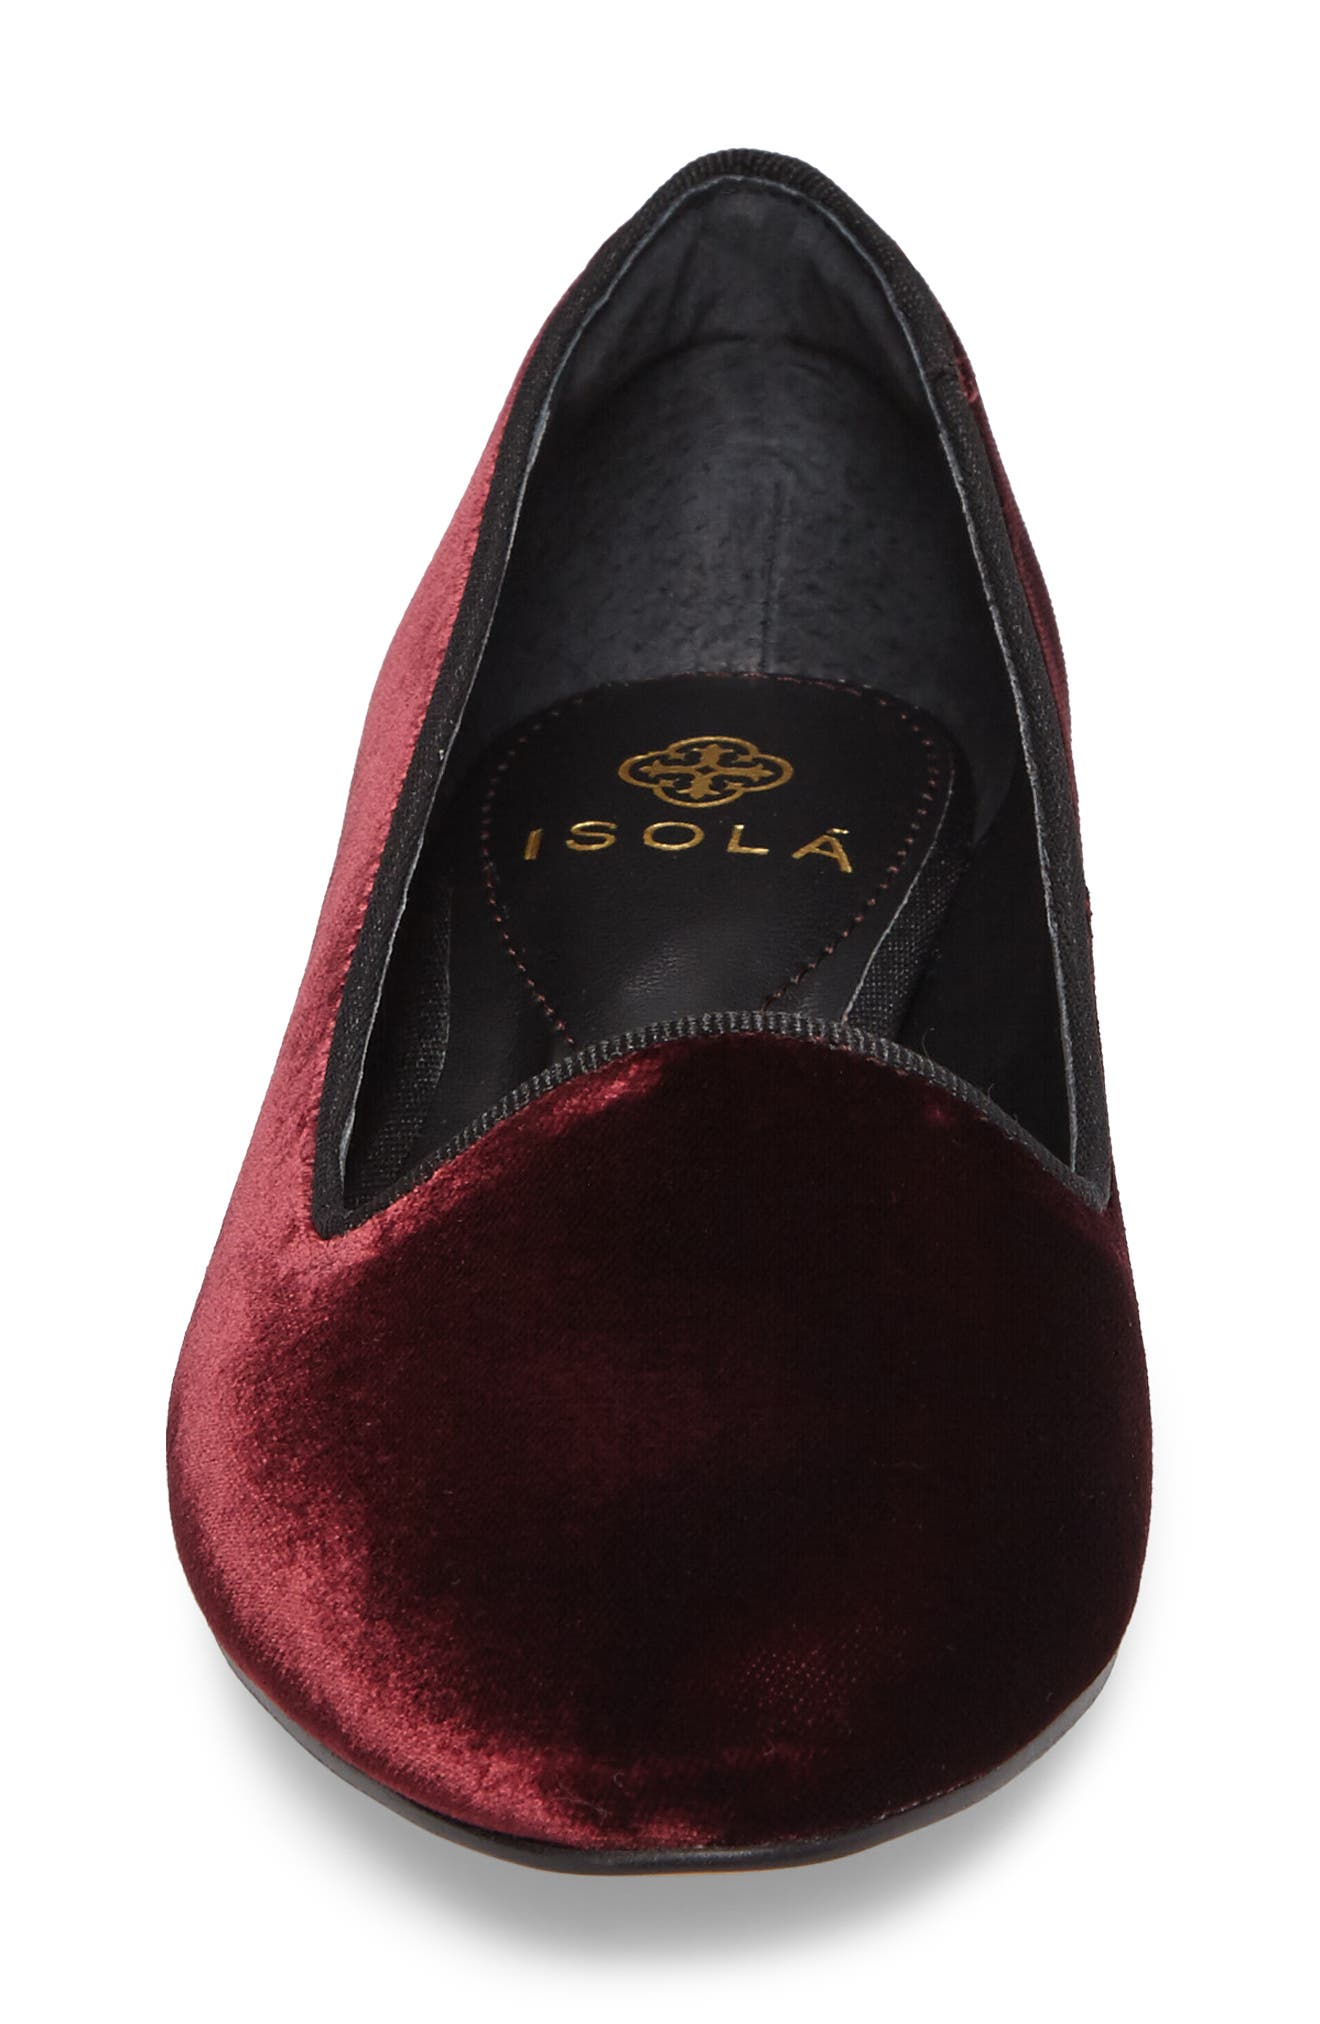 ISOLÁ, Casoria Smoking Slipper, Alternate thumbnail 4, color, BORDEAUX VELVET